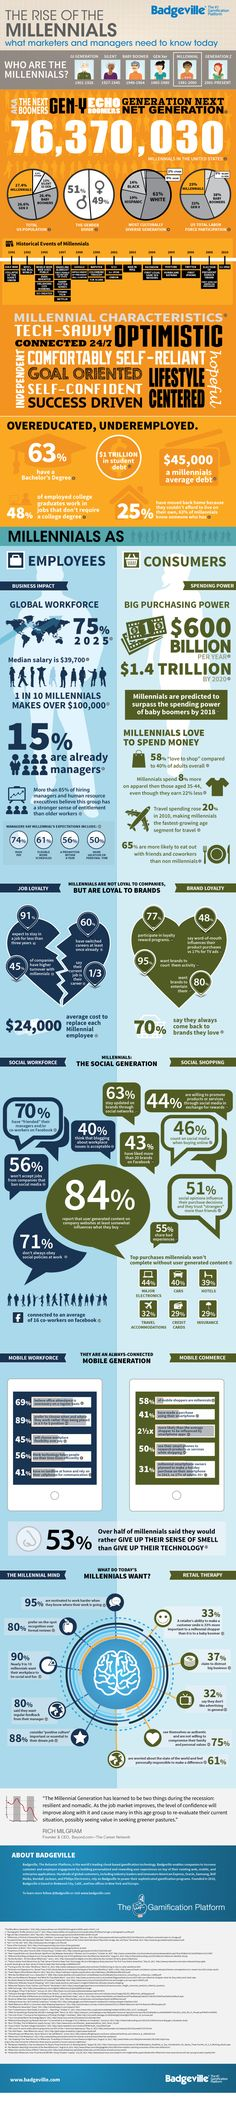 What business #marketers need to know about #millennials - #infographic